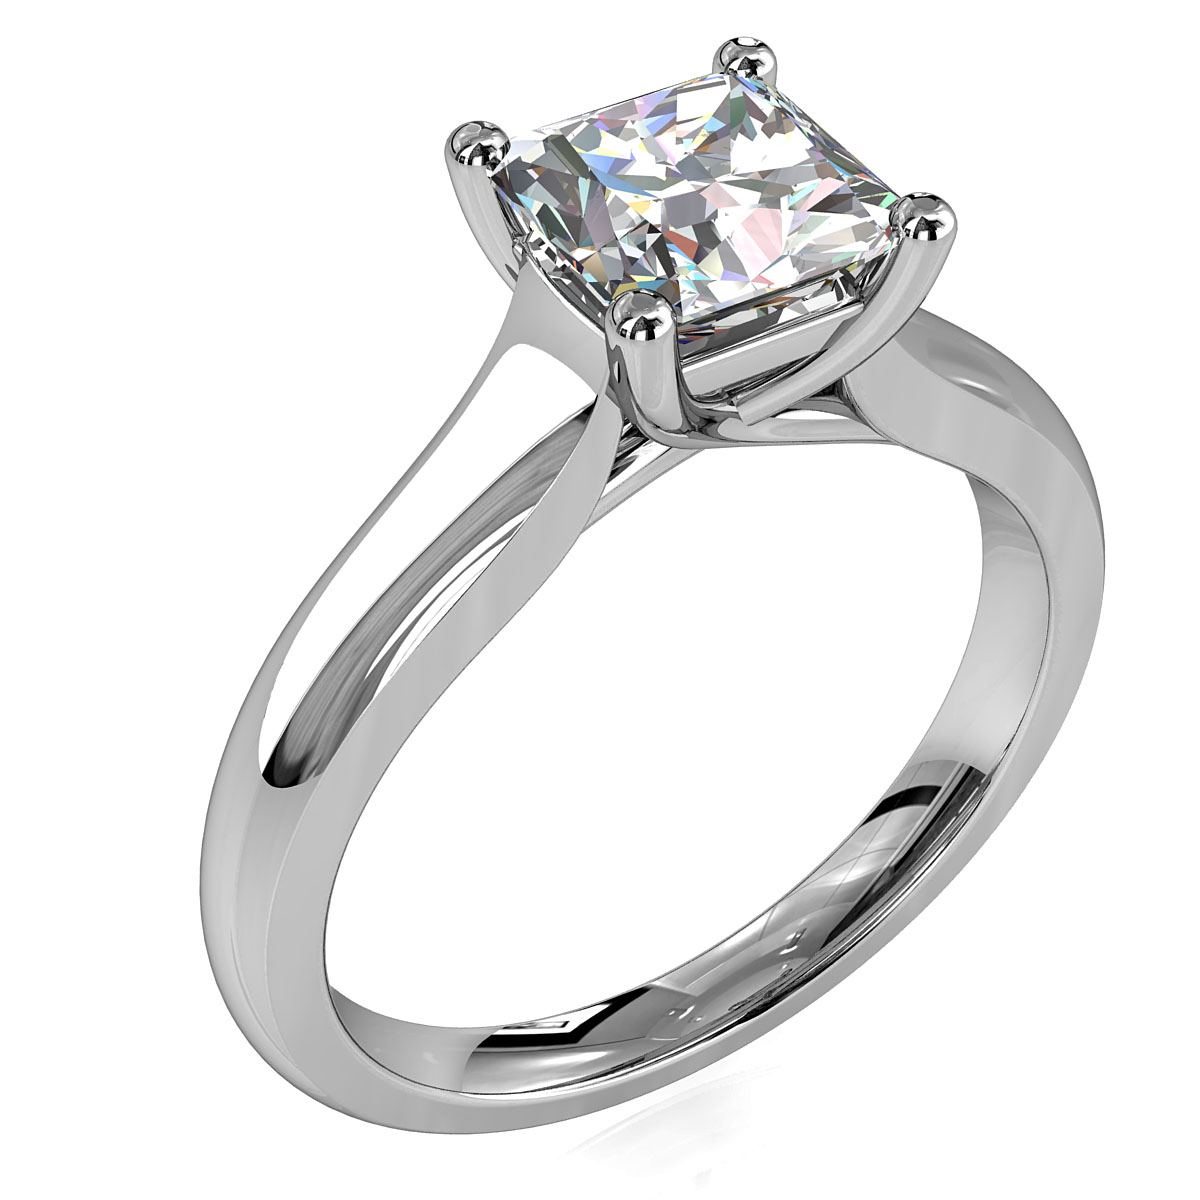 Princess Cut Solitaire Diamond Engagement Ring, 4 Claws on a Wide Band with an Undersweep Setting.